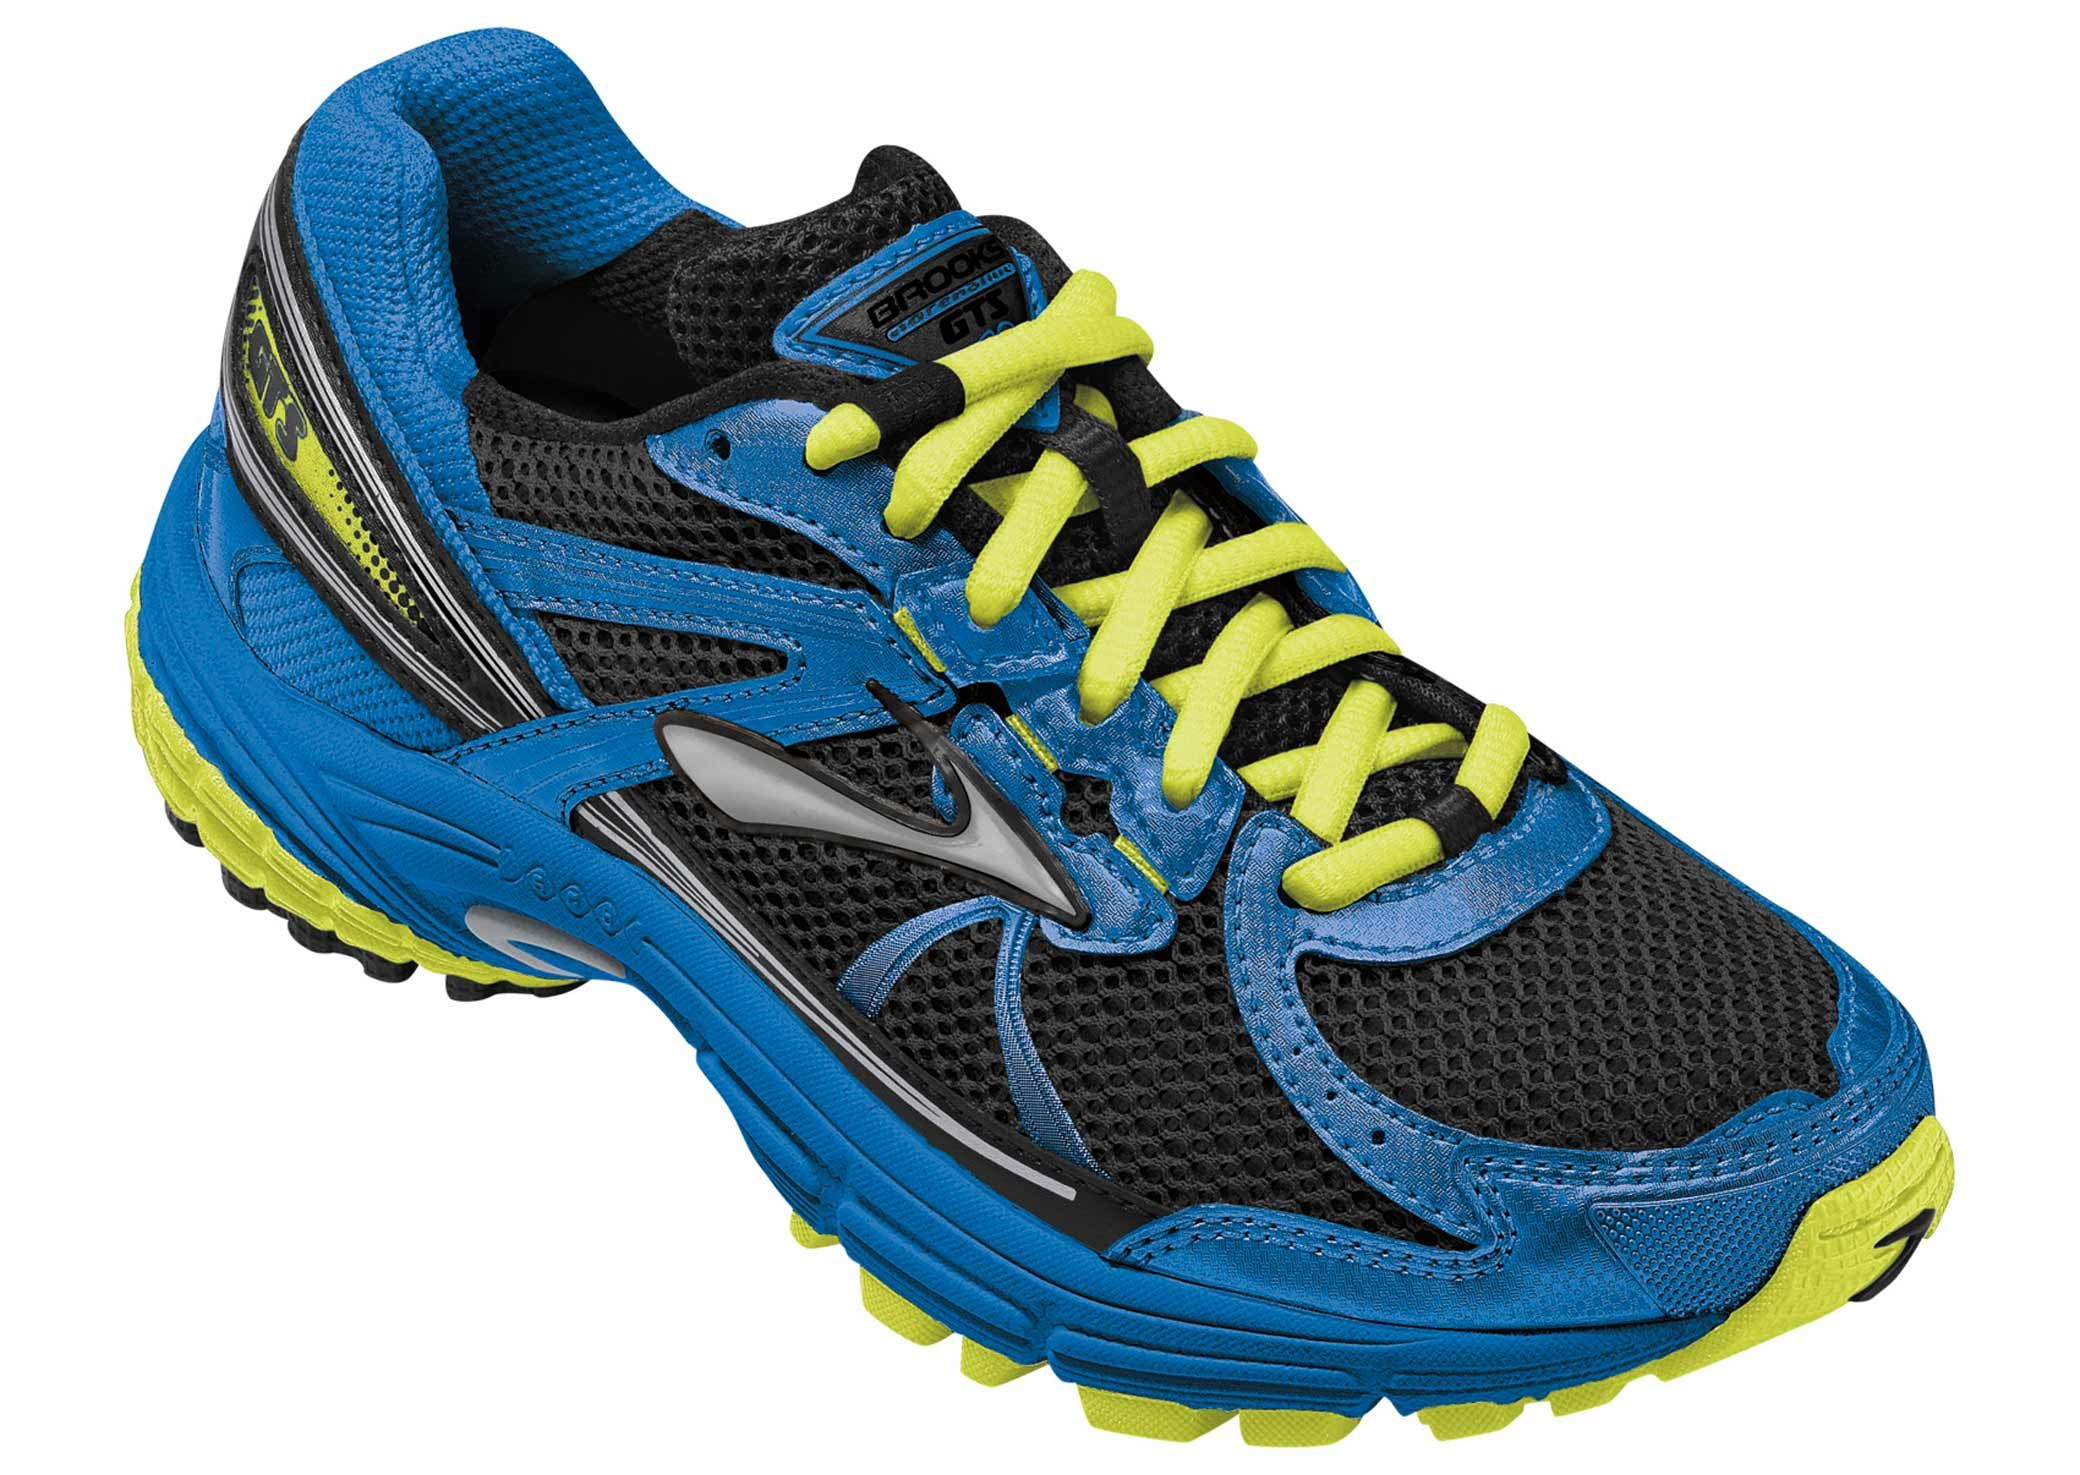 d4ad197d903 Brooks Kids Adrenaline GTS  running shoe for boys with Brooks DNA adaptive  cushioning